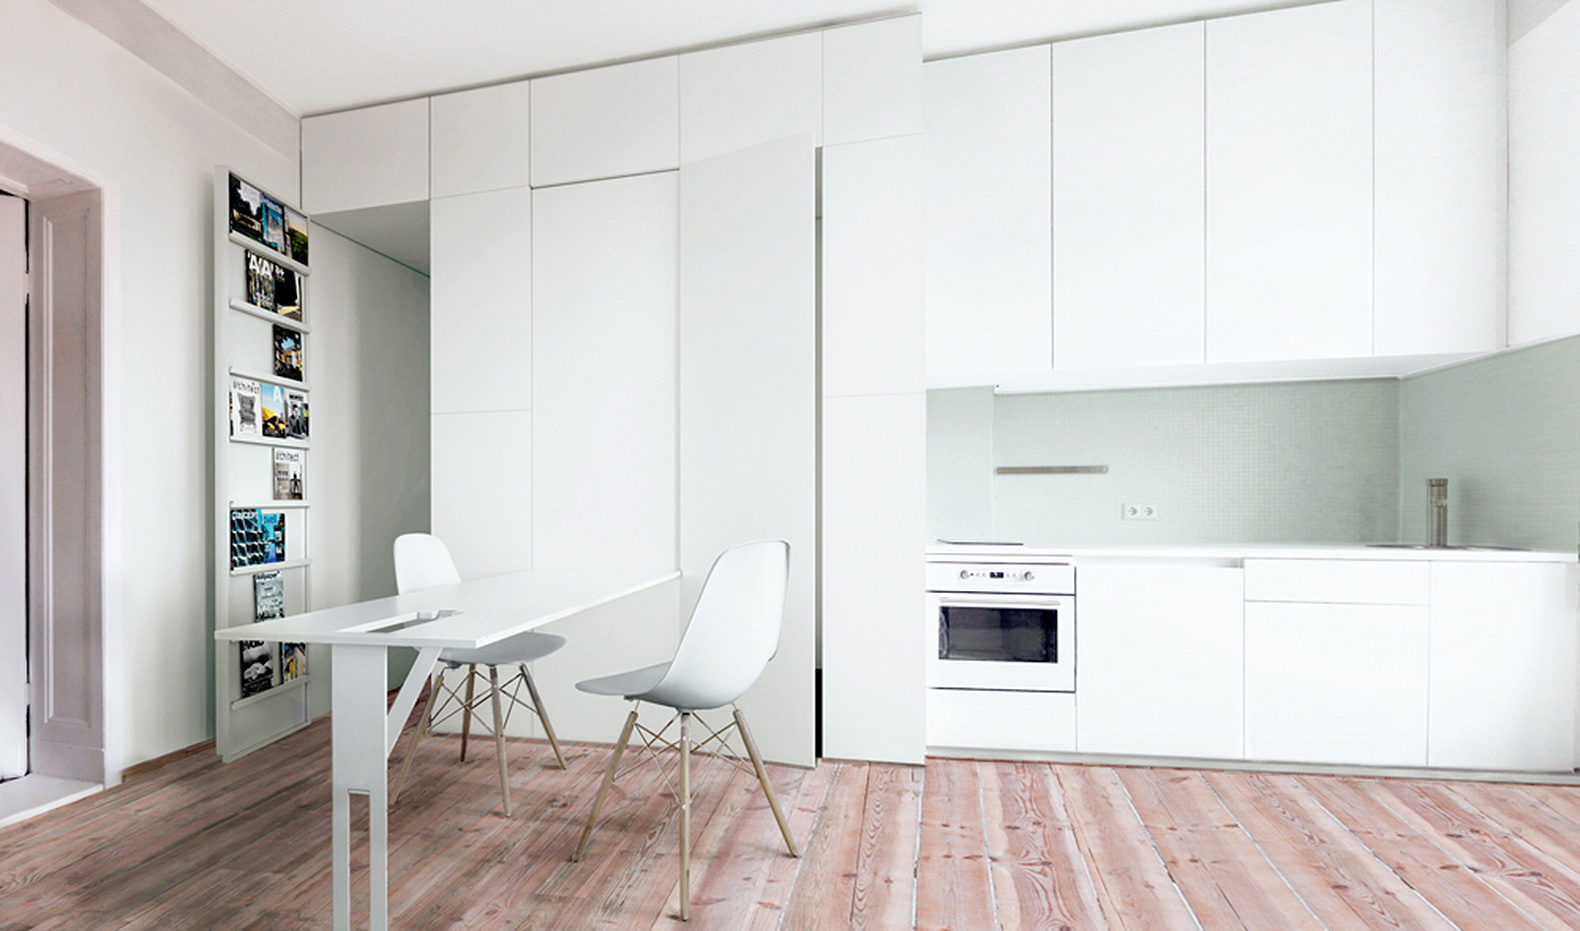 Furniture folds out of the walls in this tiny transforming apartment